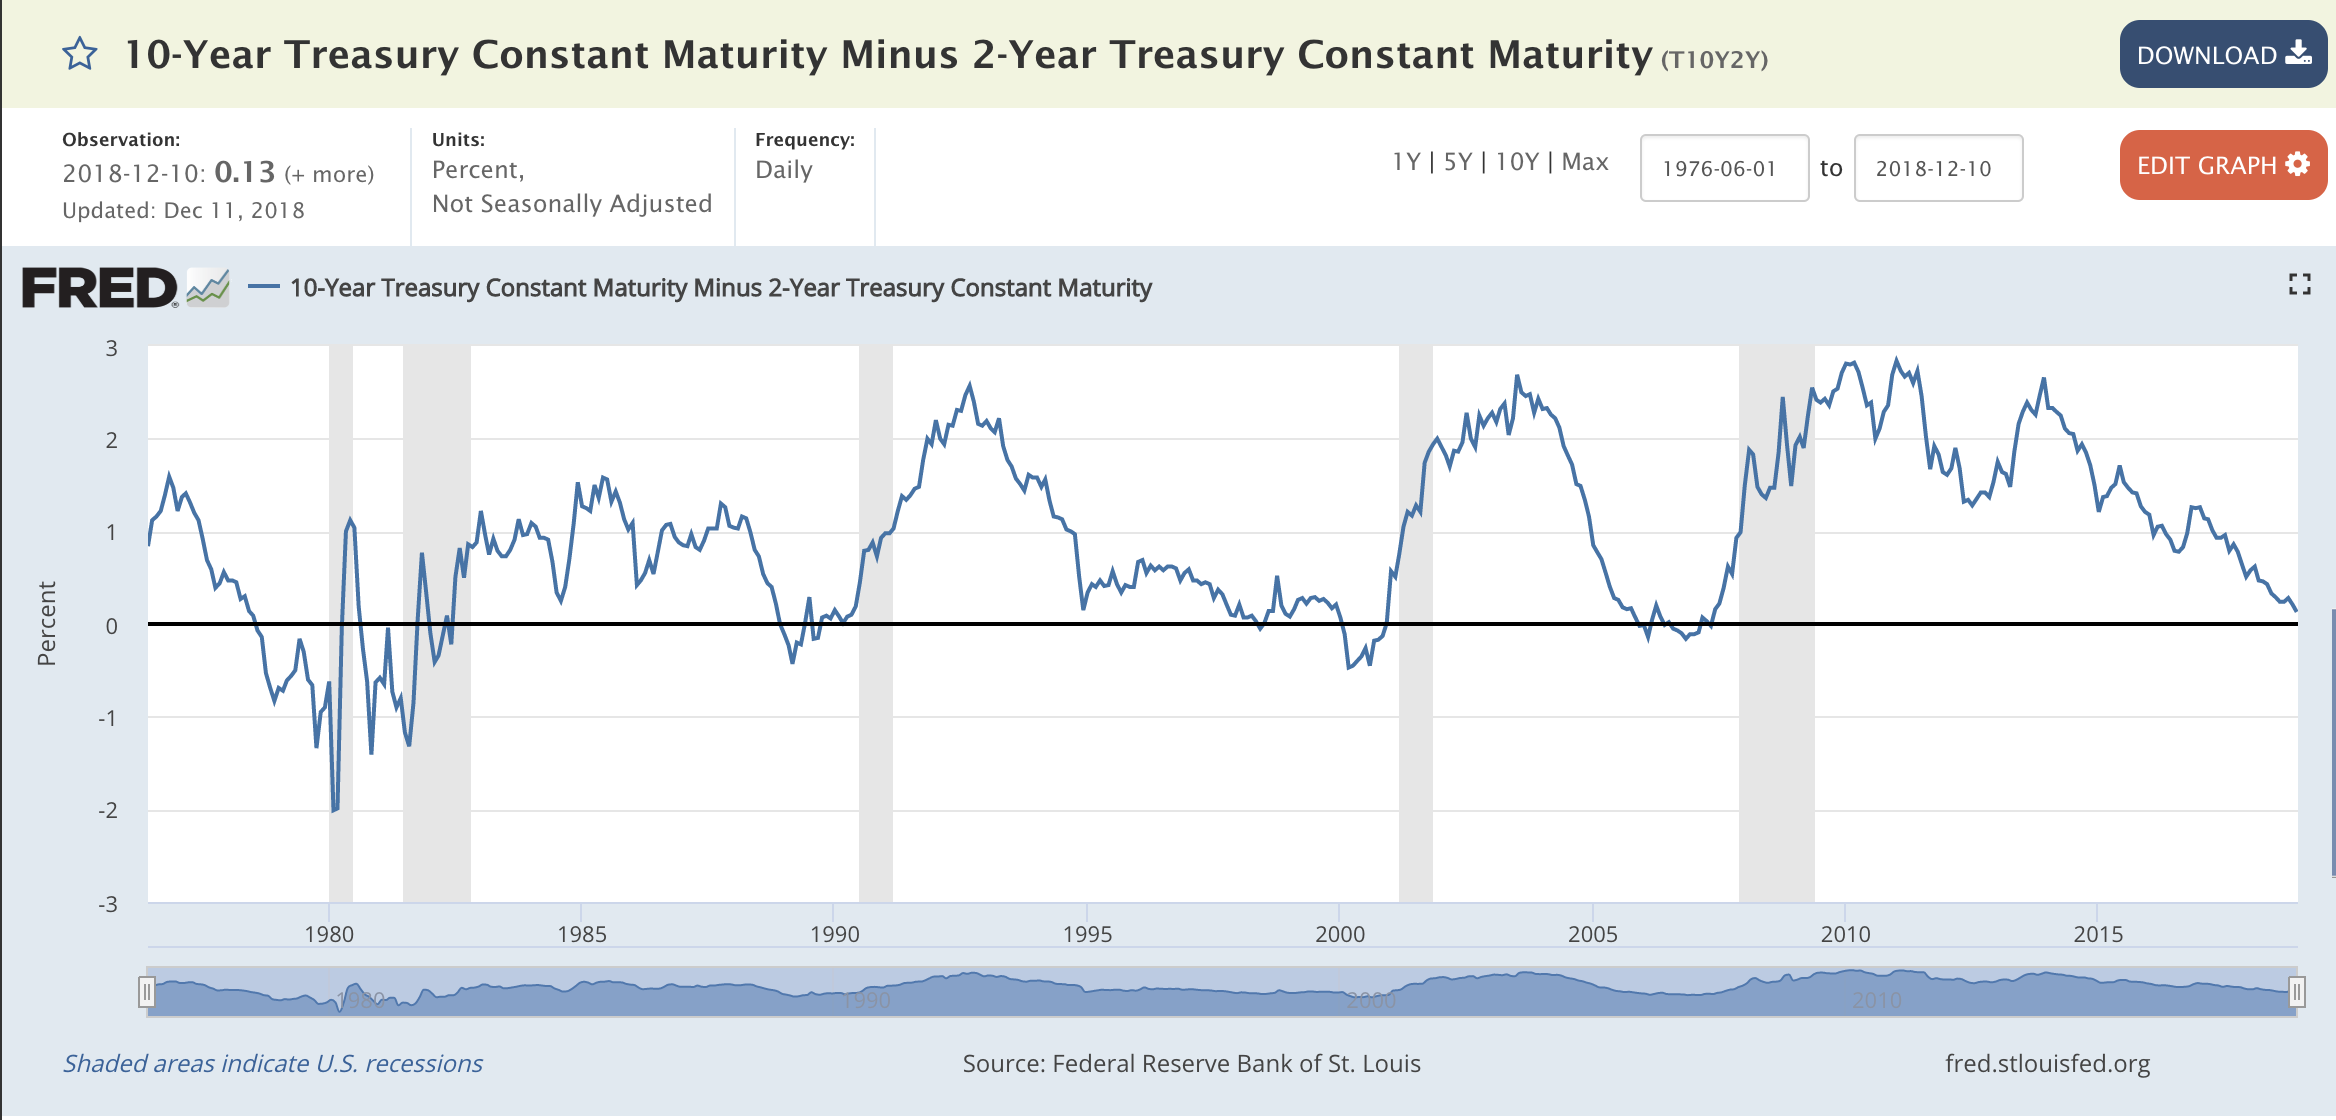 10-Year Treasury Constant Maturity Minus 2-Year Treasury Constant Maturity